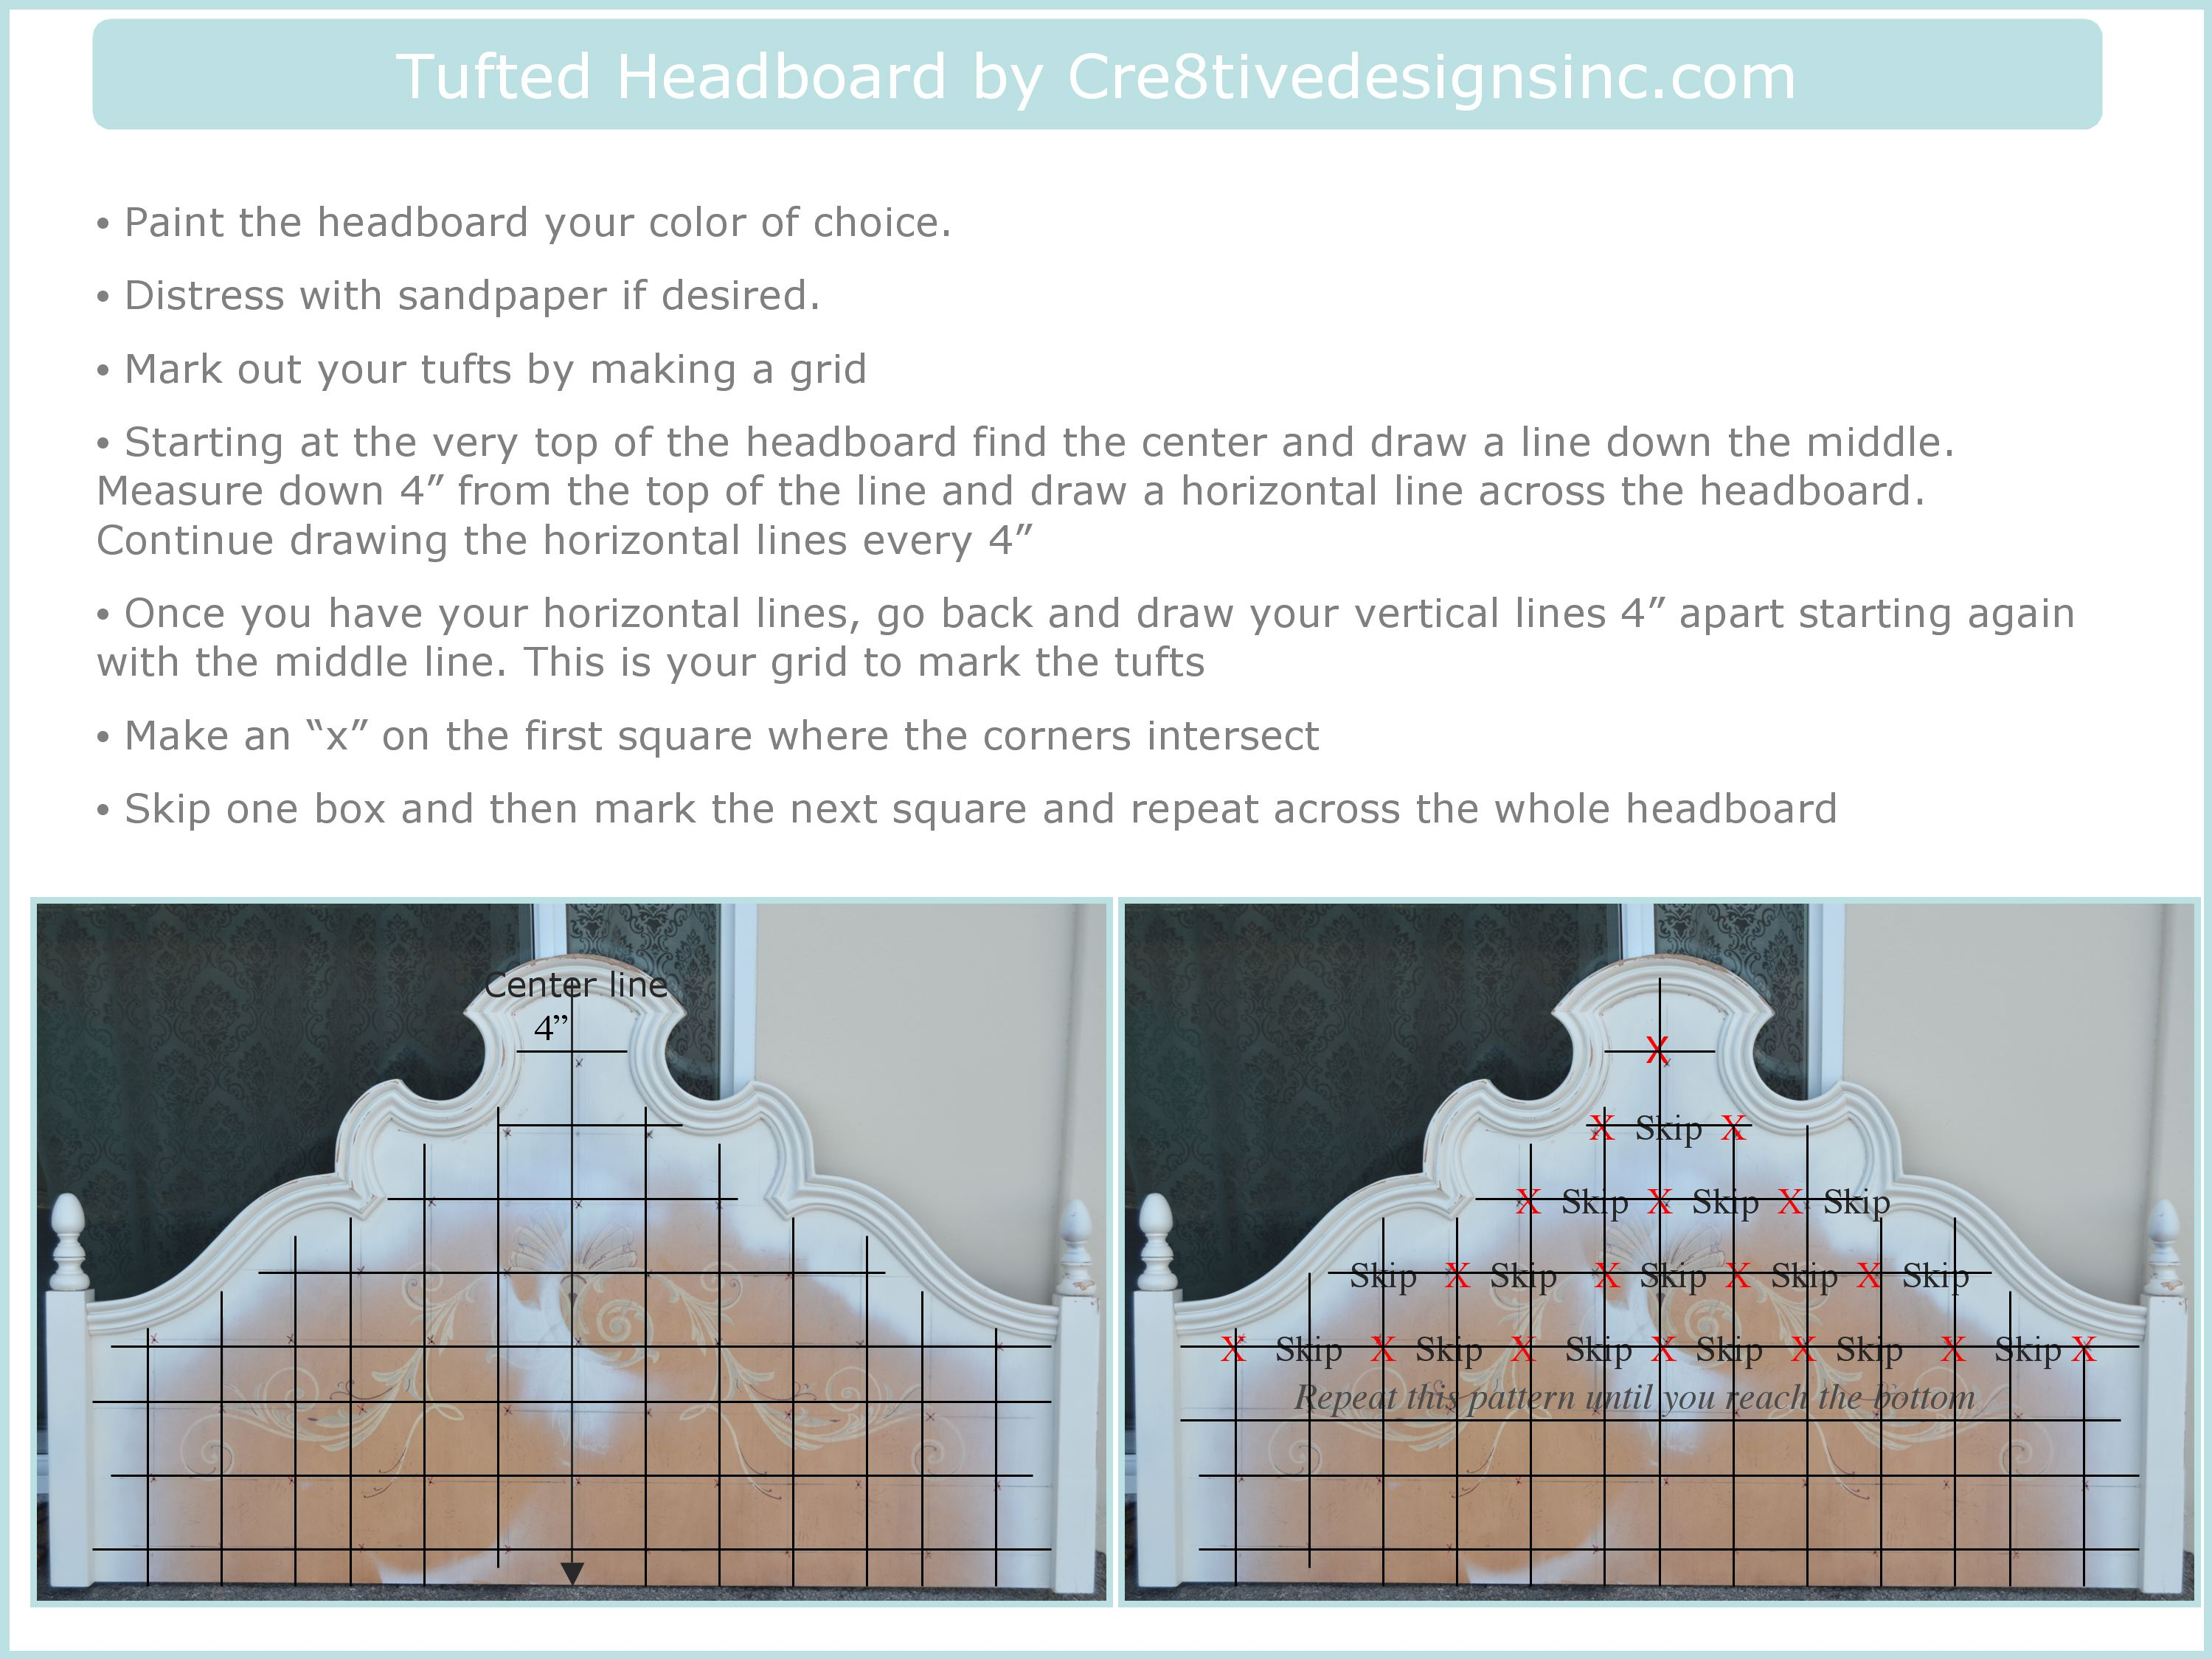 Tutorial on how to make the tufted headboardCre8tive Designs Inc.